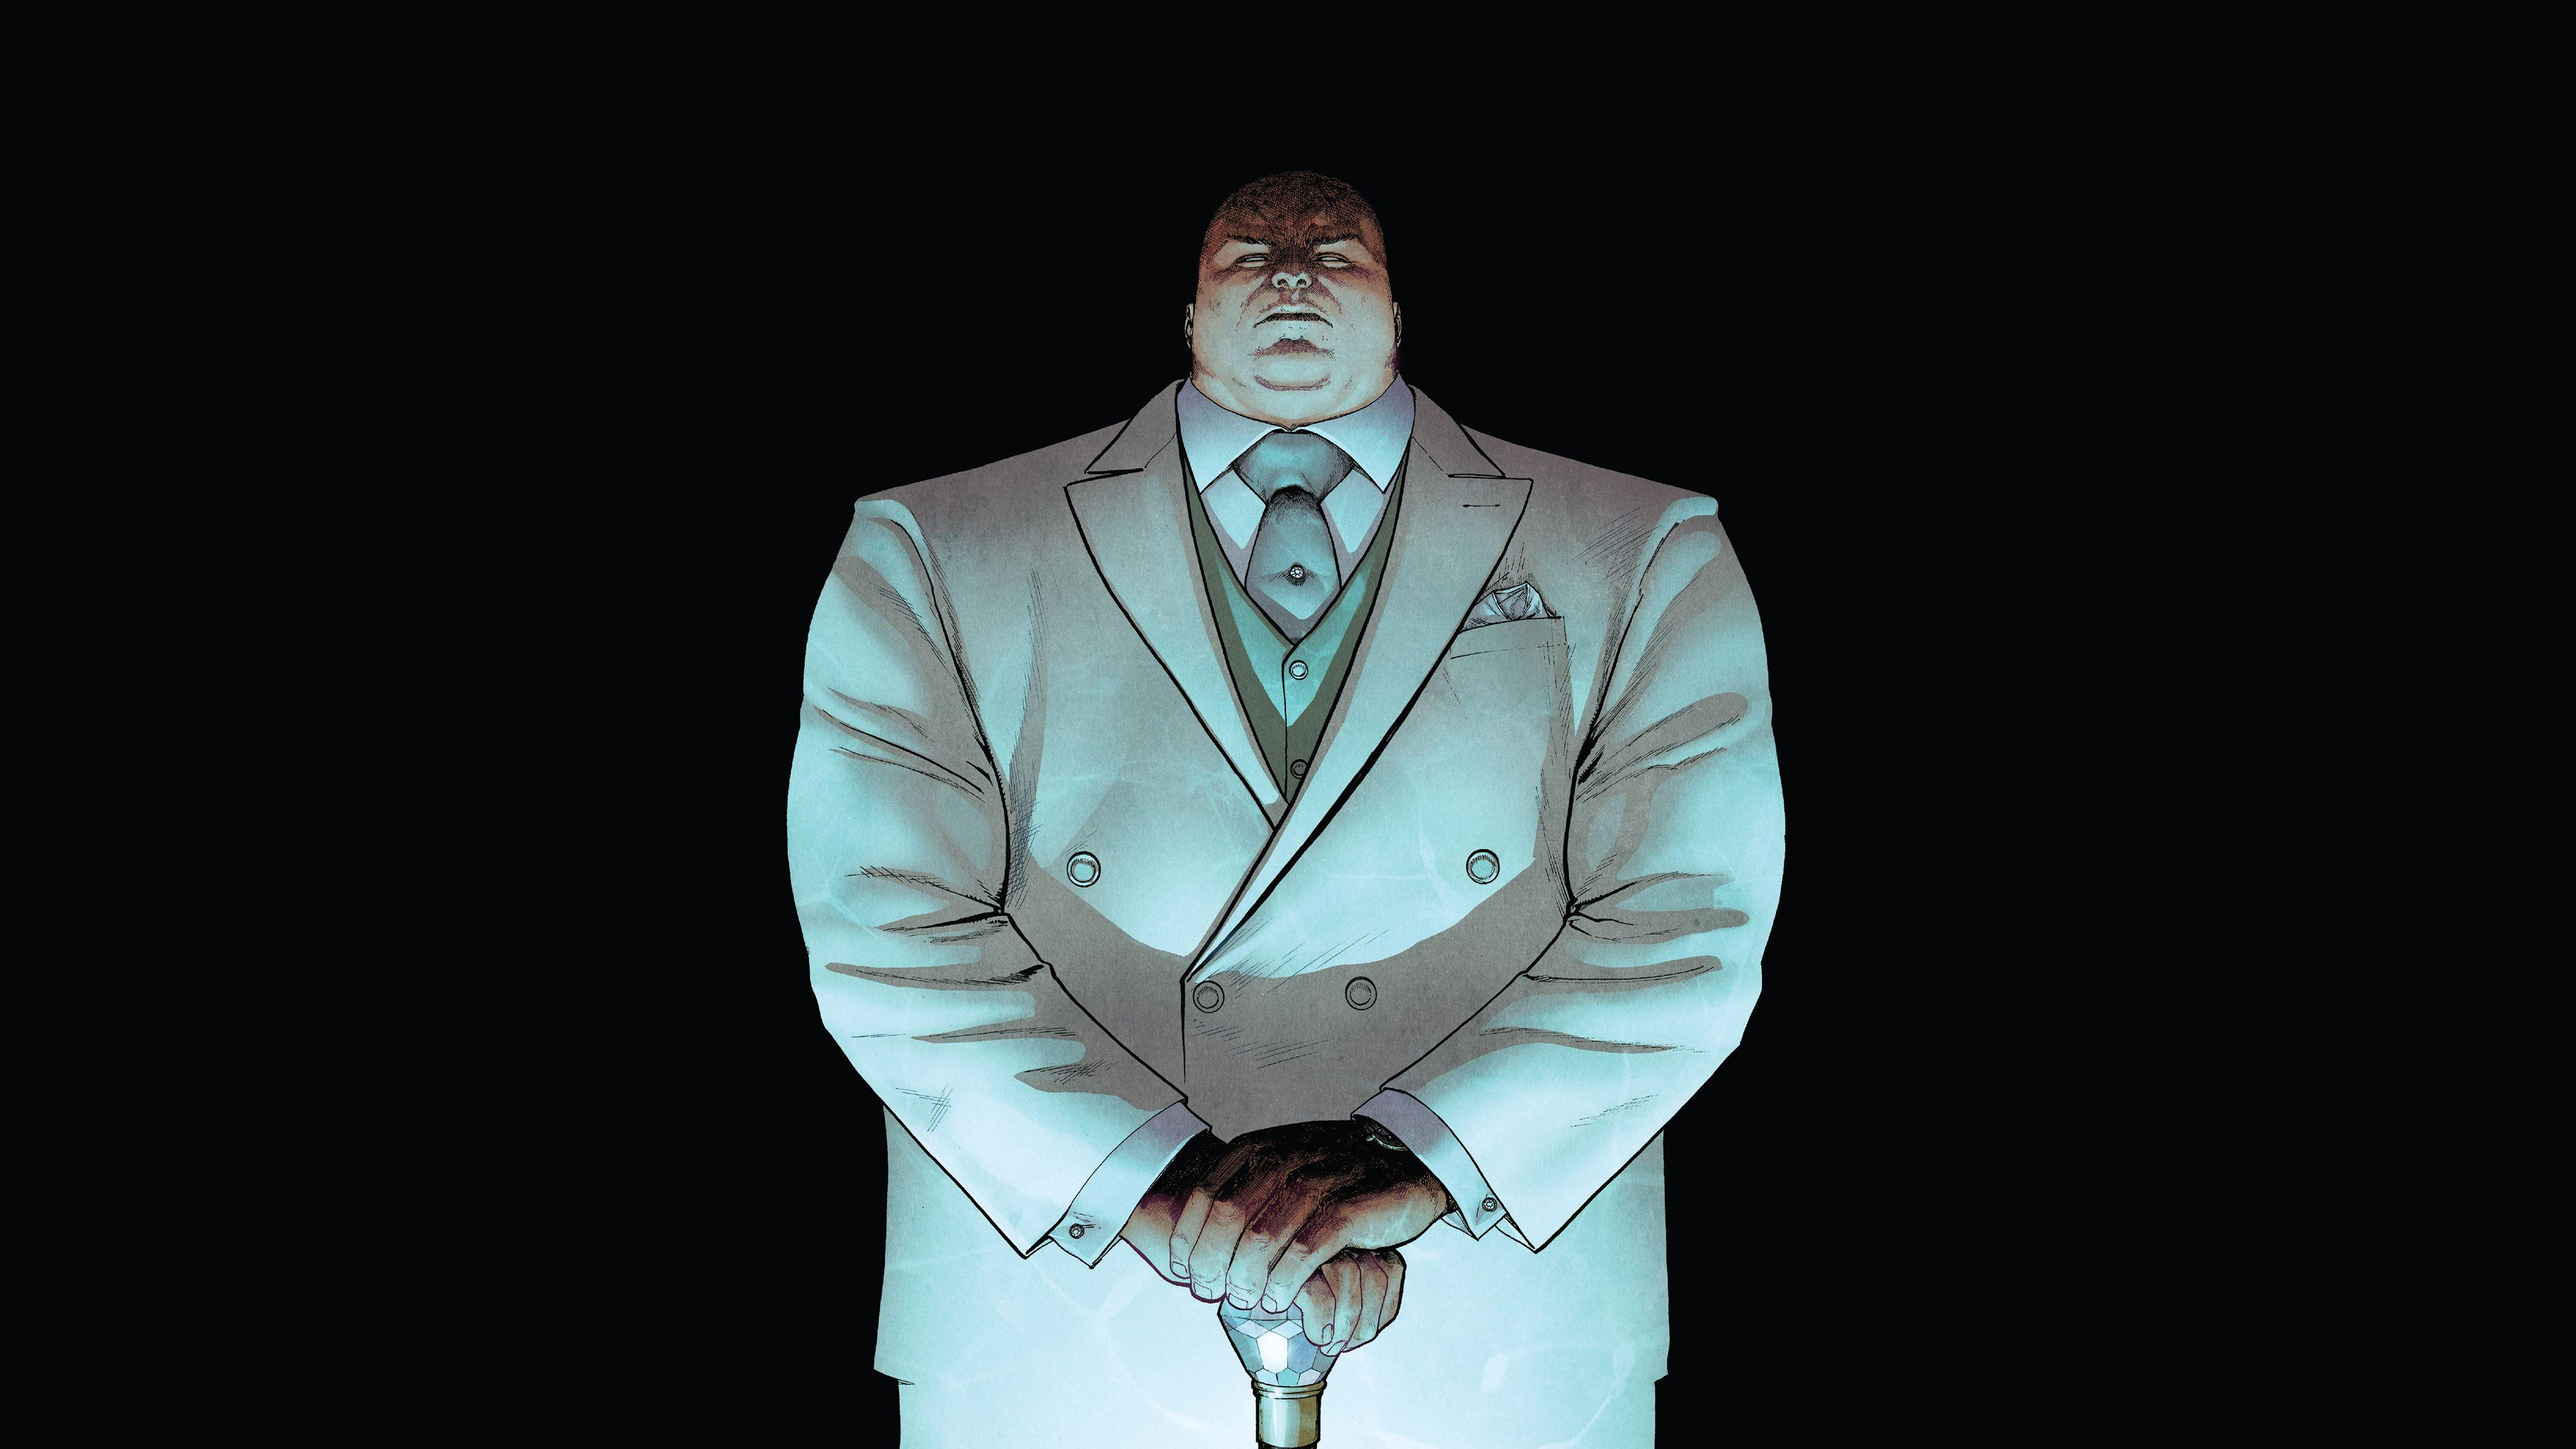 3 Kingpin HD Wallpapers